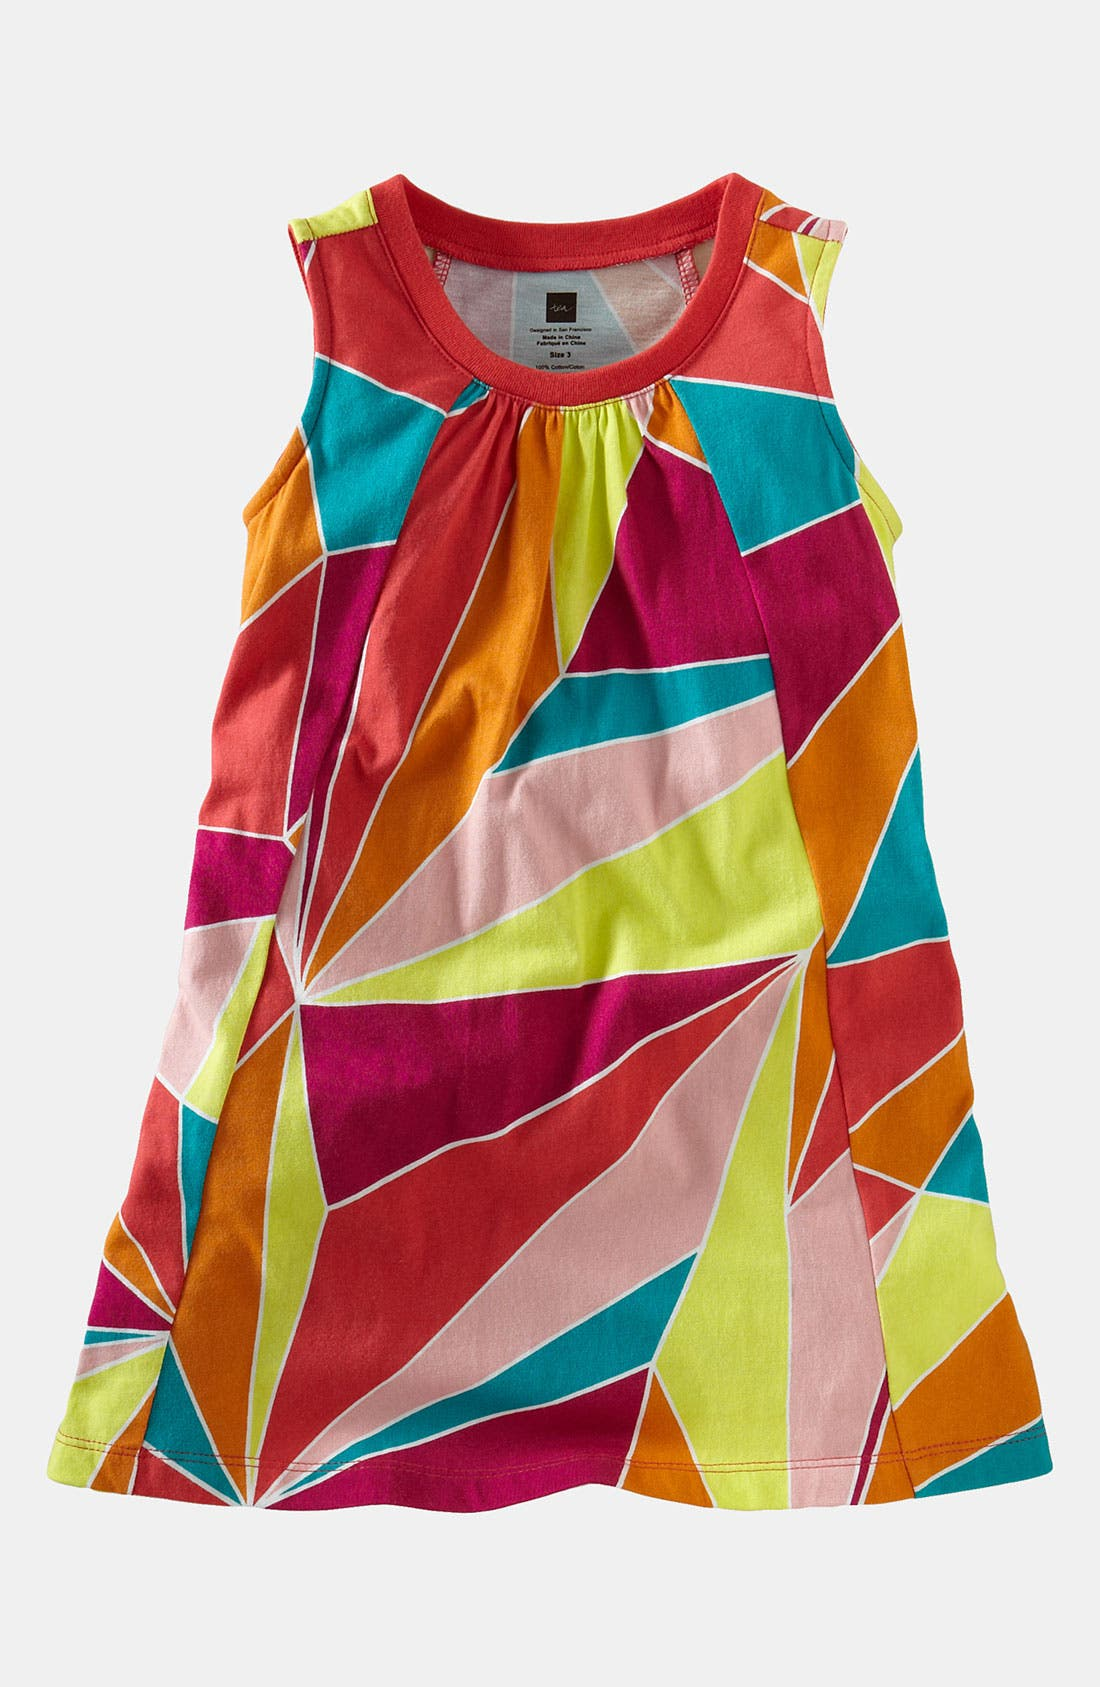 Alternate Image 1 Selected - Tea Collection 'Bo-Kaap' Dress (Baby)